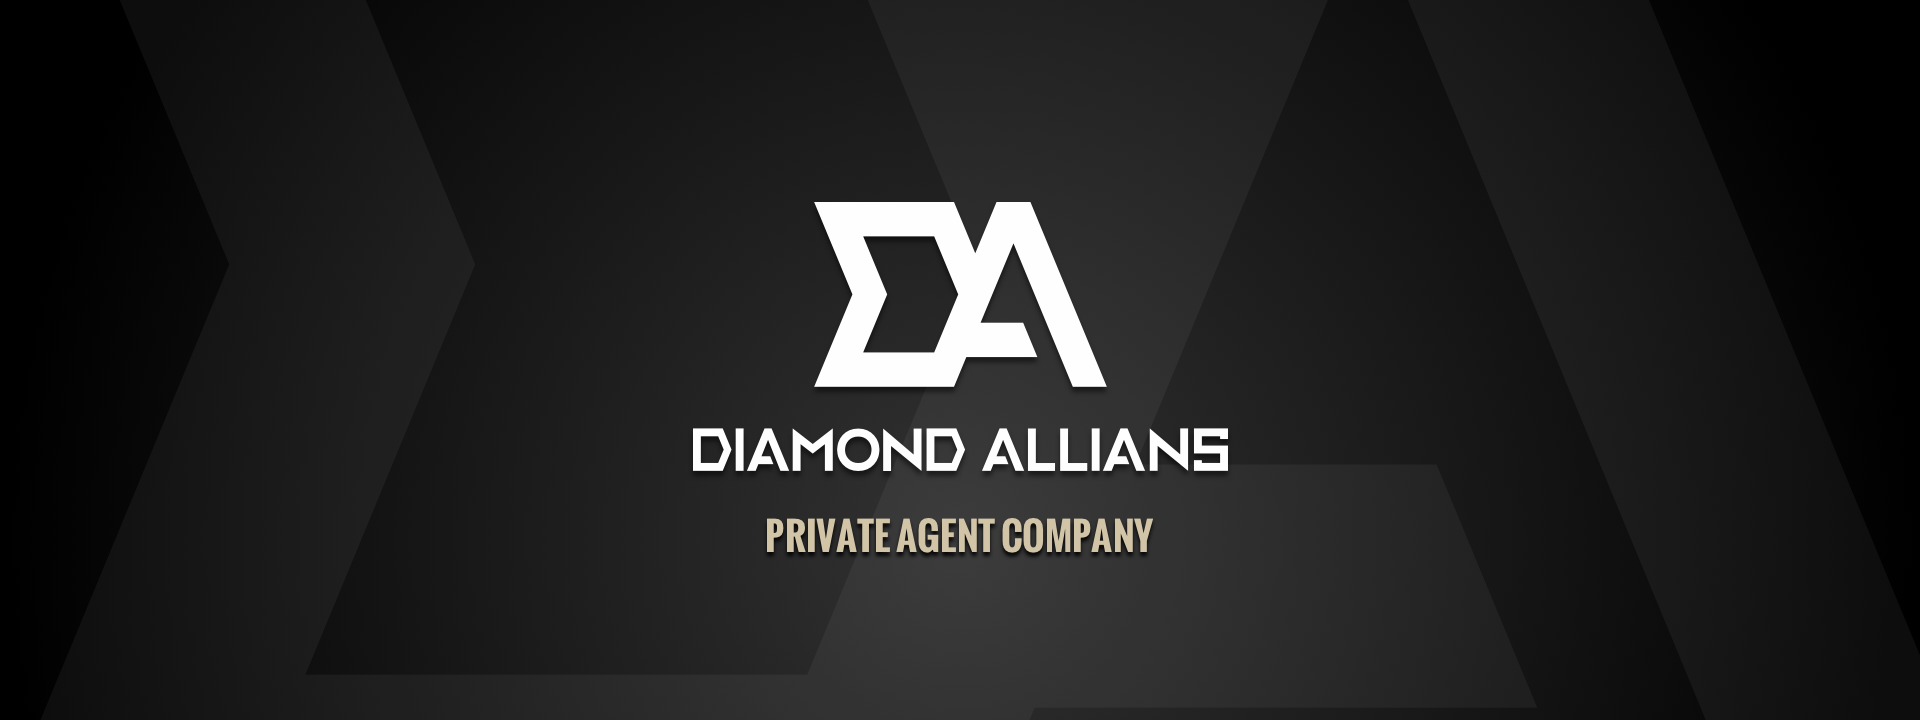 DIAMOND ALLIANS LOGO